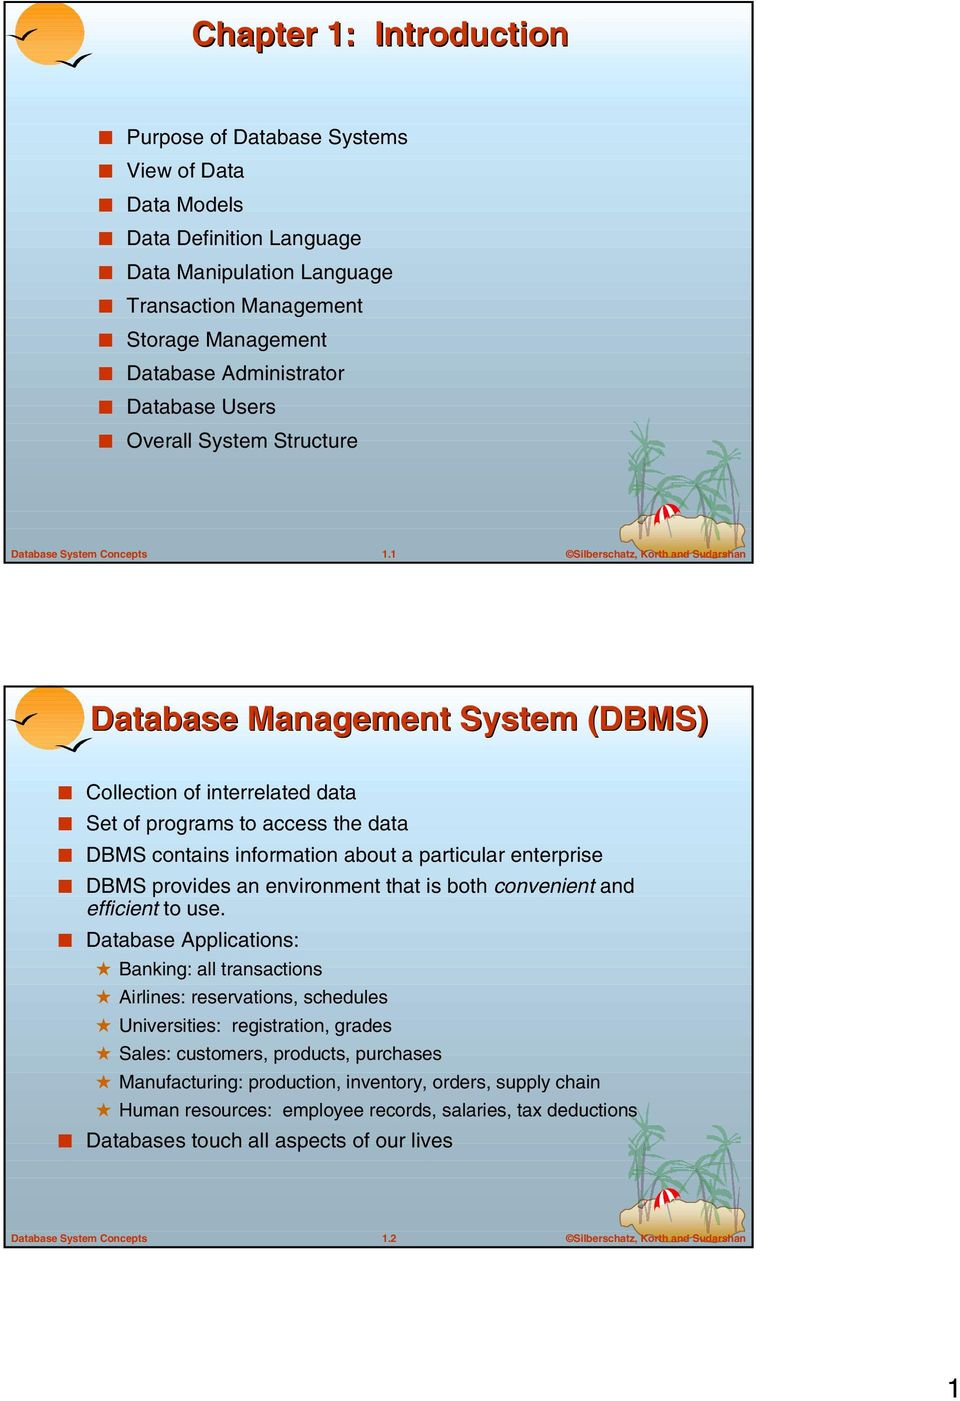 1 Database Management System (DBMS) Collection of interrelated data Set of programs to access the data DBMS contains information about a particular enterprise DBMS provides an environment that is